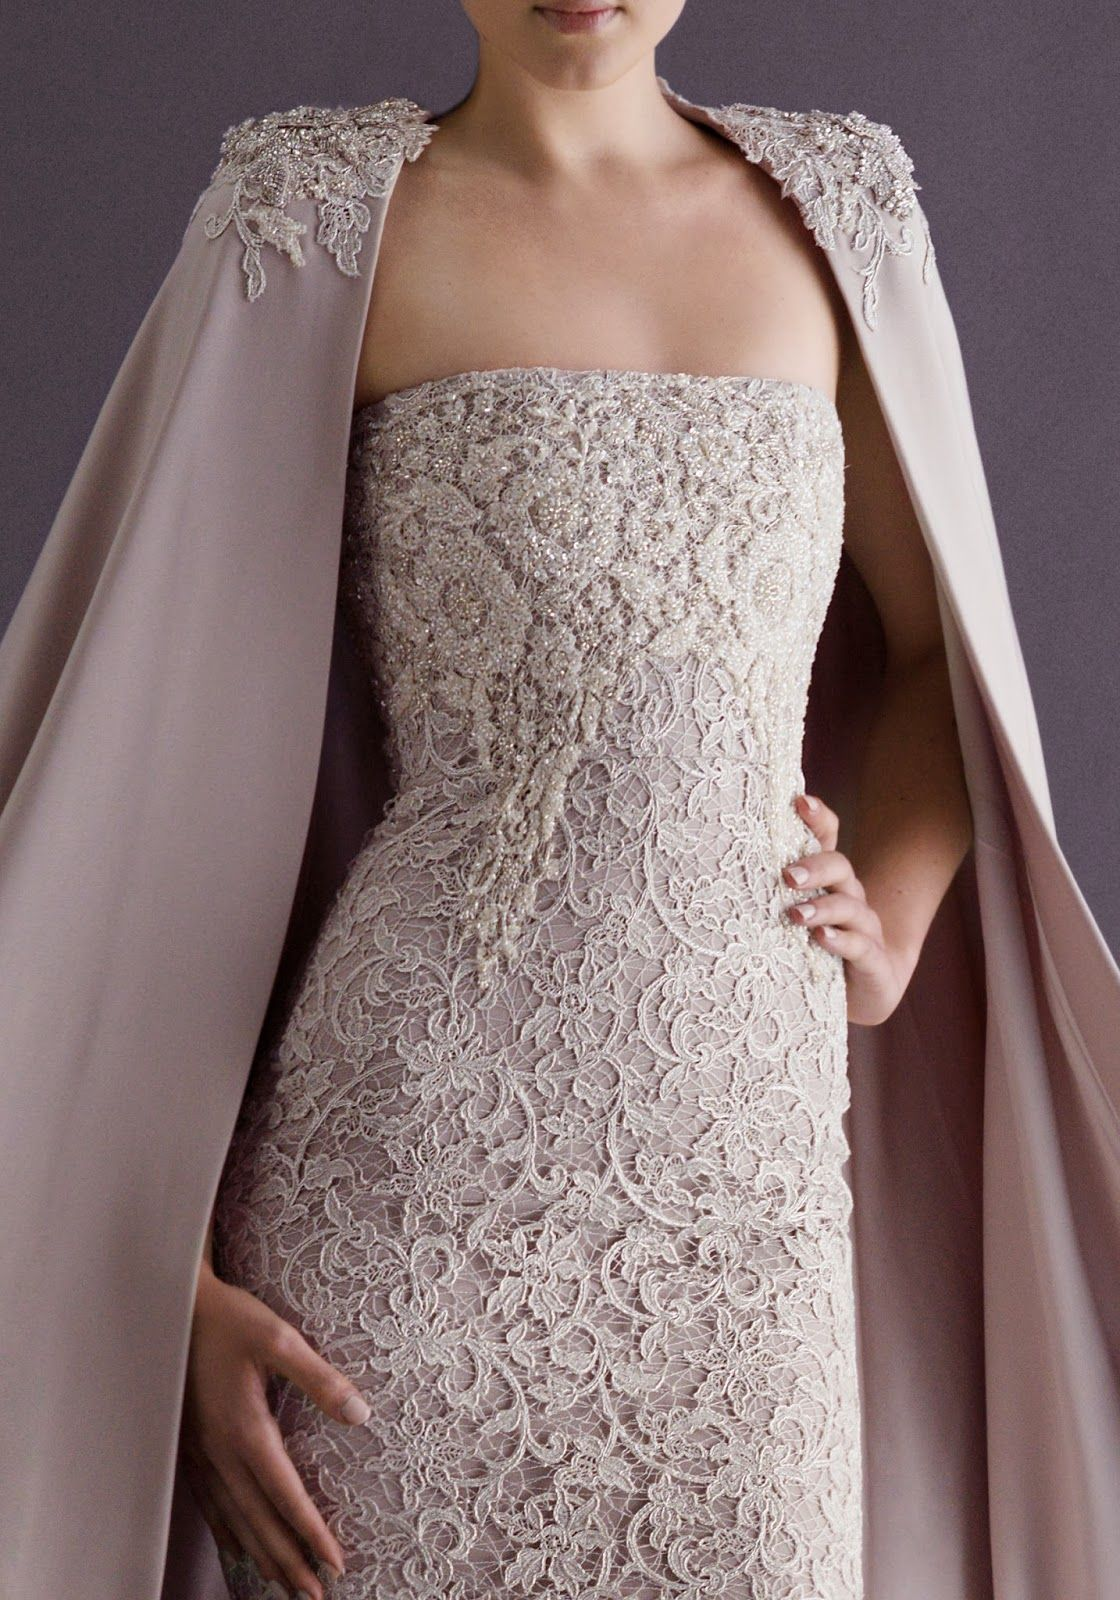 Simply Stunning Wedding Gown Collection | Beauty | Pinterest ...